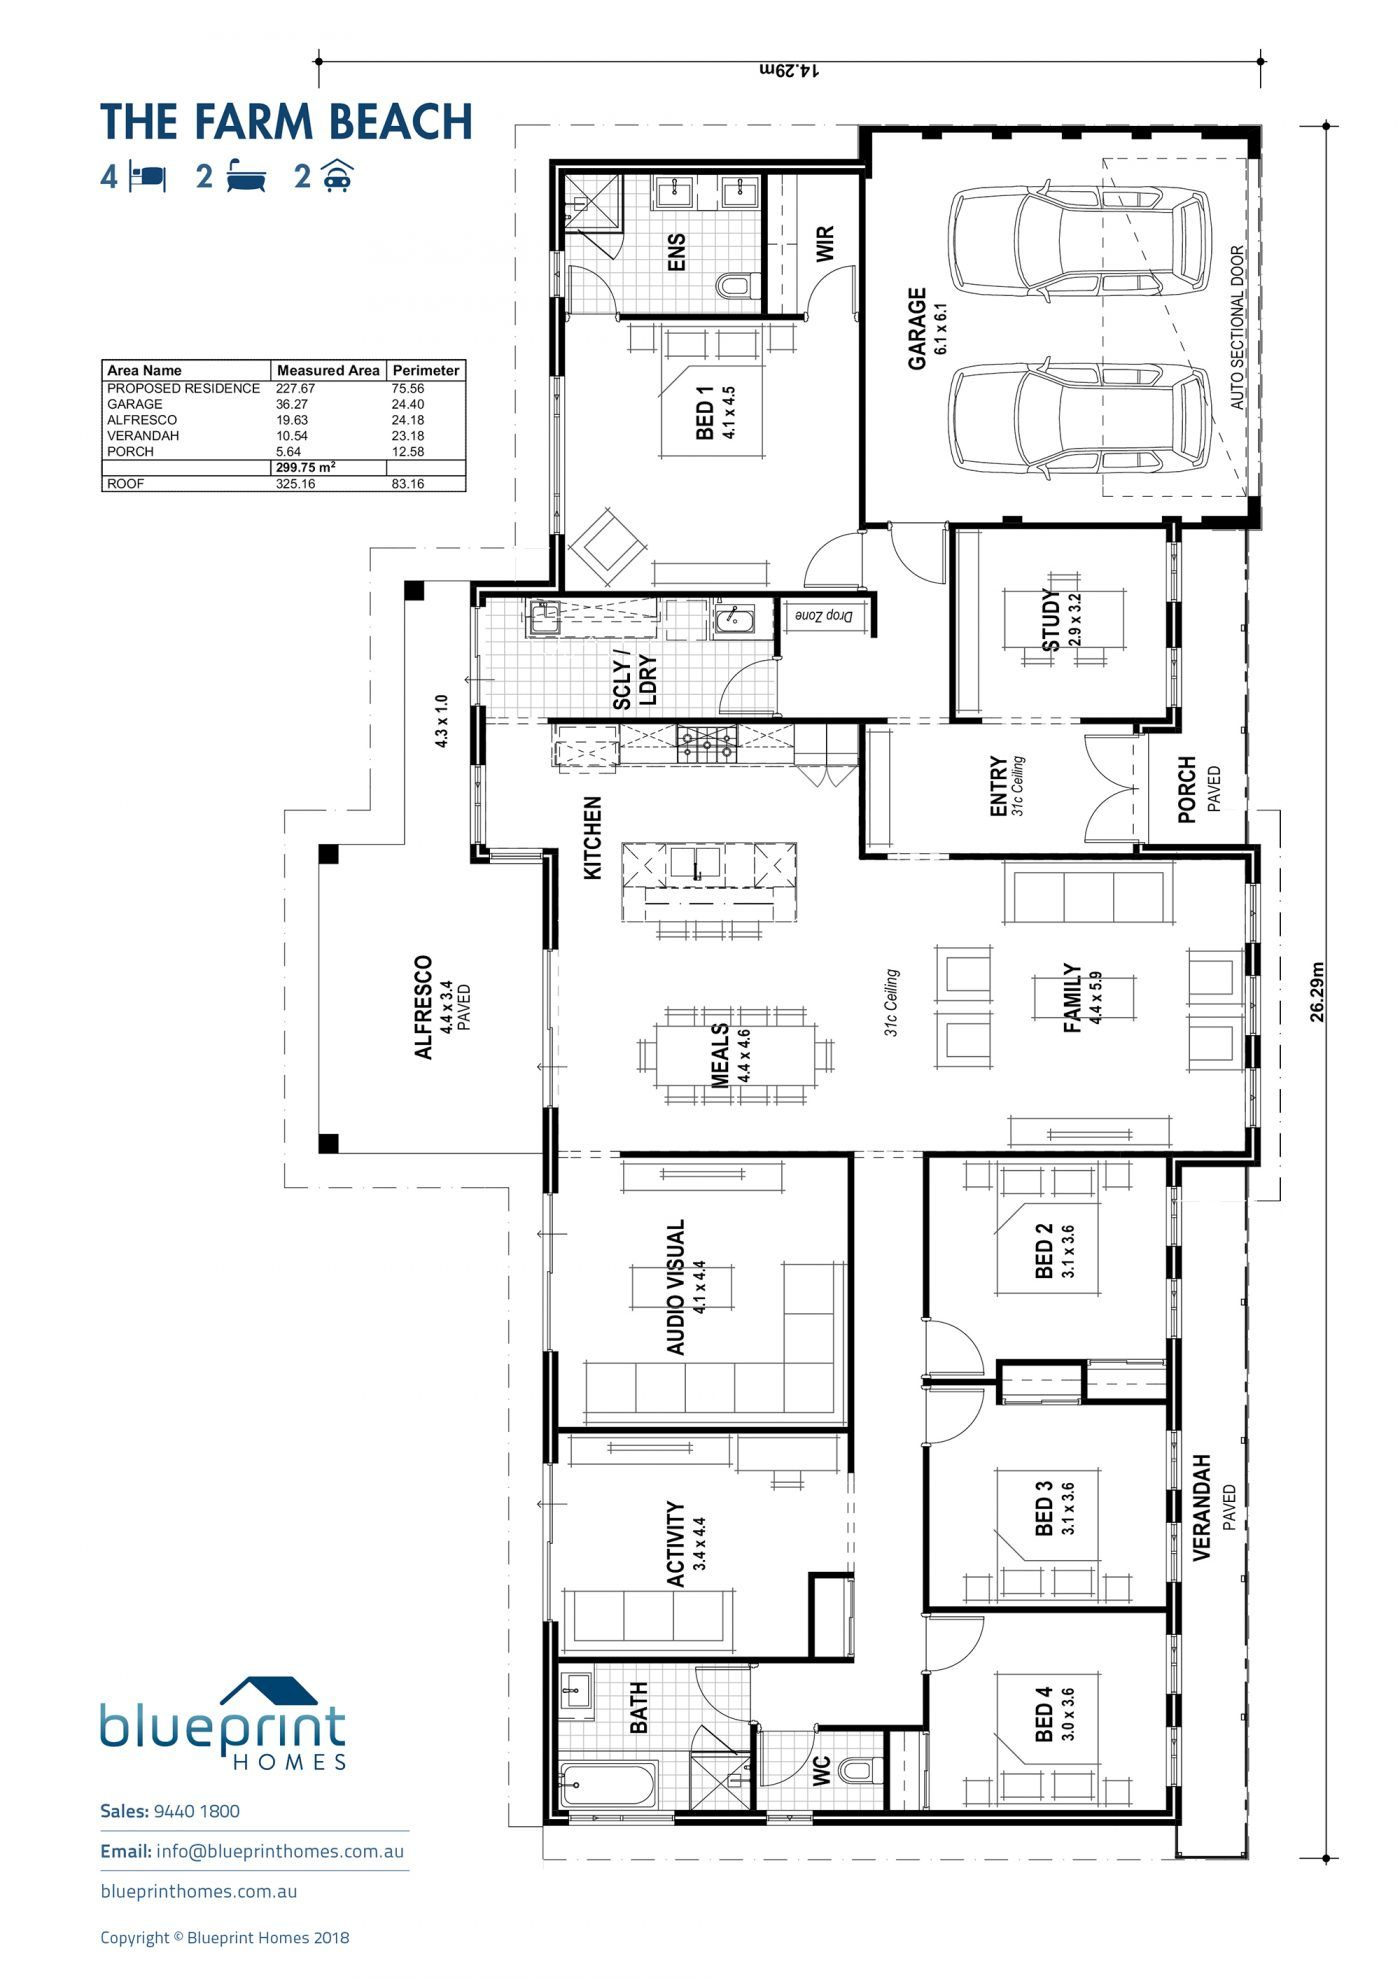 Farm Beach Perth Home Design Blueprint Homes My House Plans Home Design Floor Plans Family House Plans